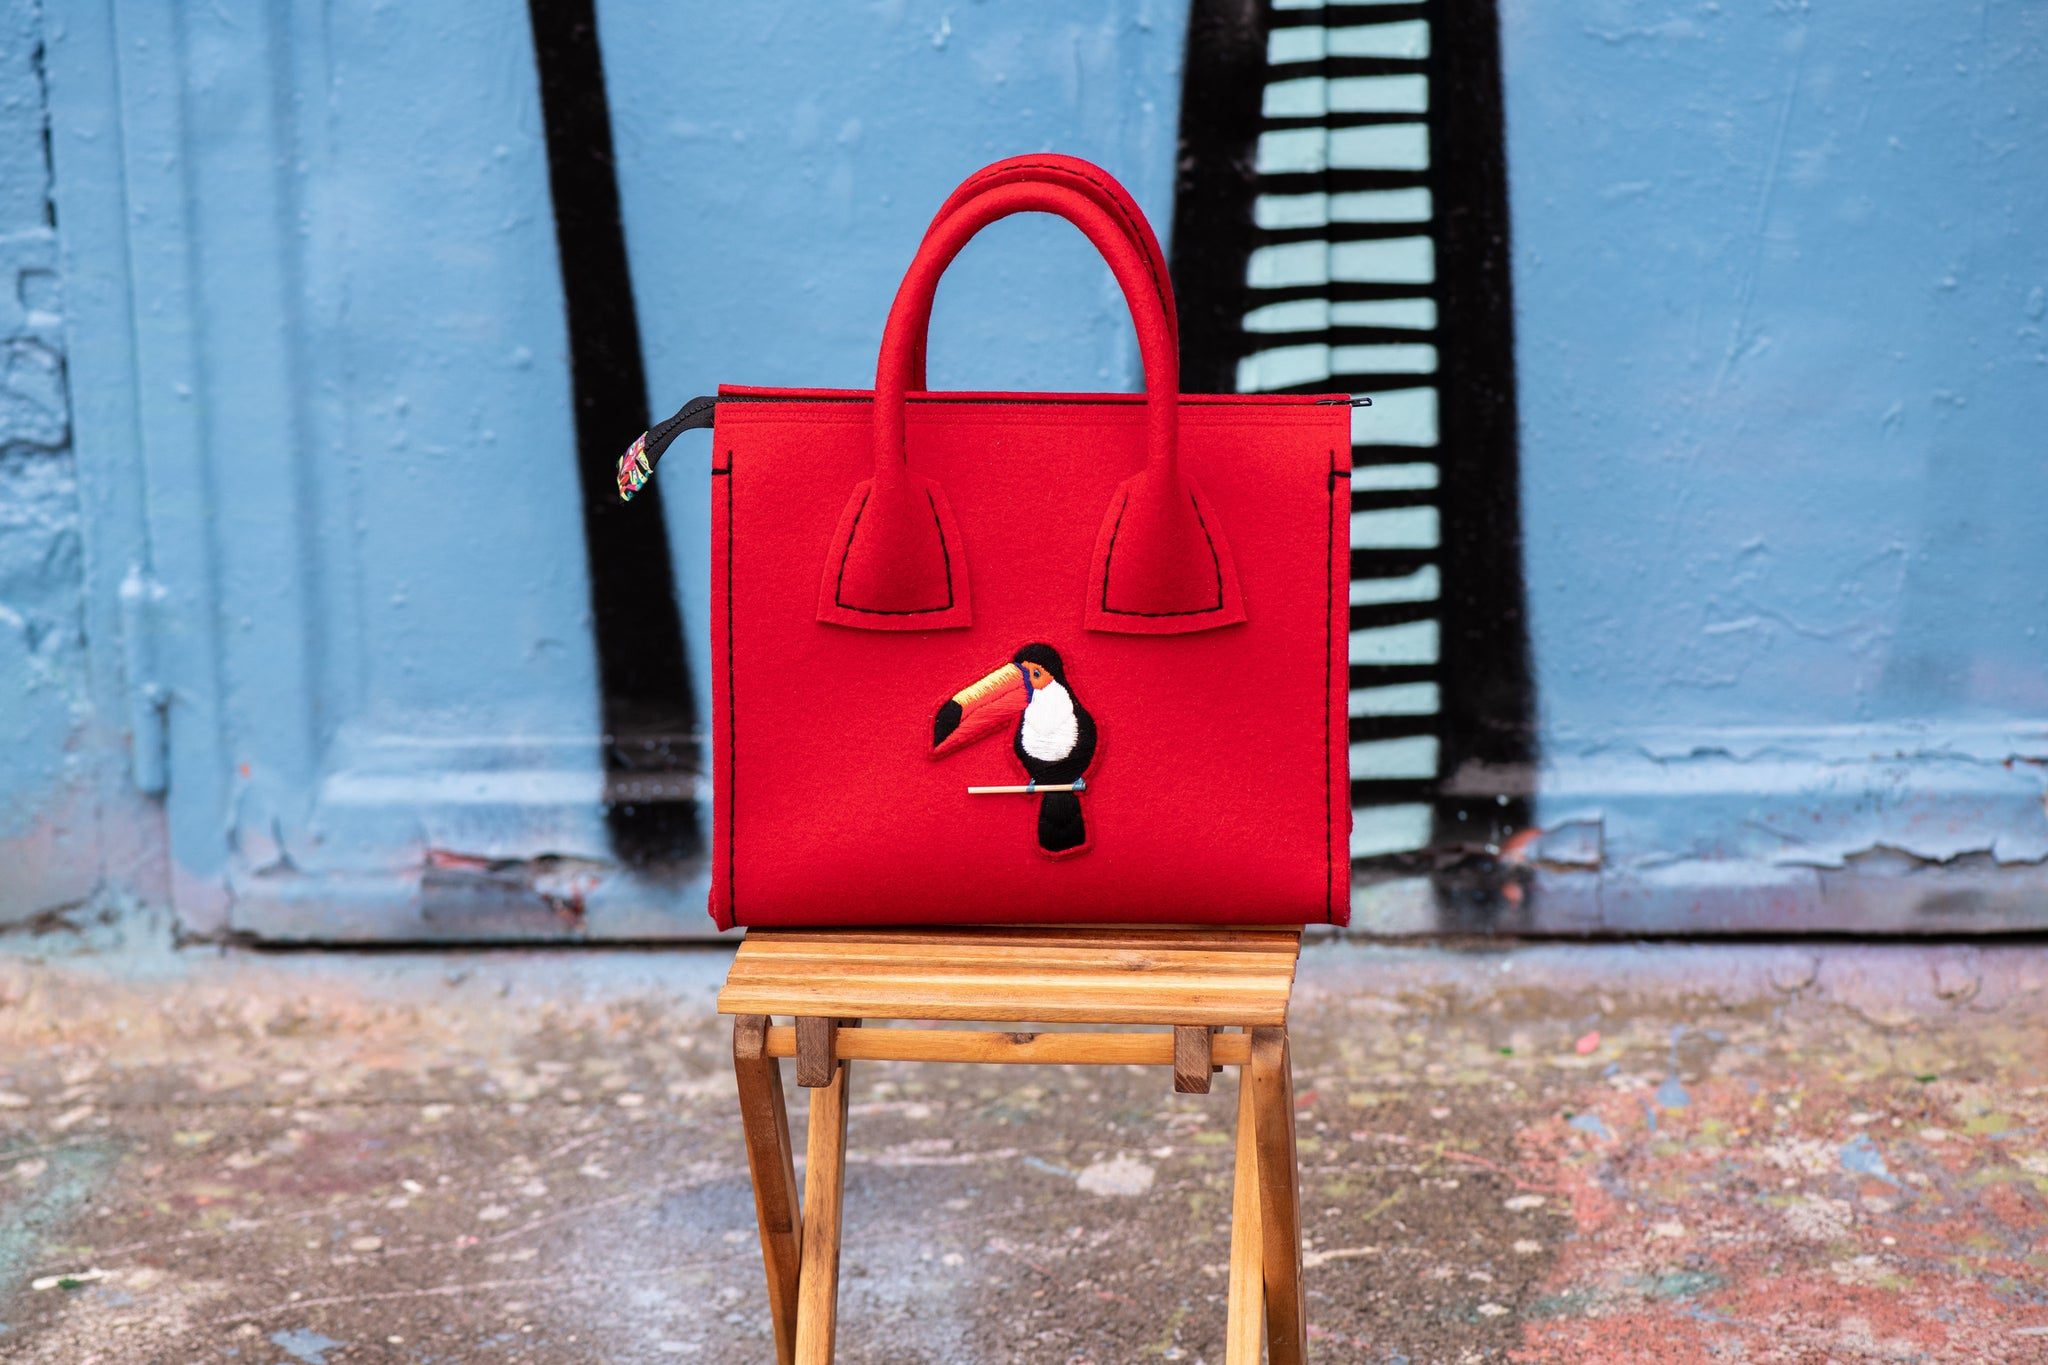 Luxury and hand-embroidered felt handbag, made in Luxembourg.